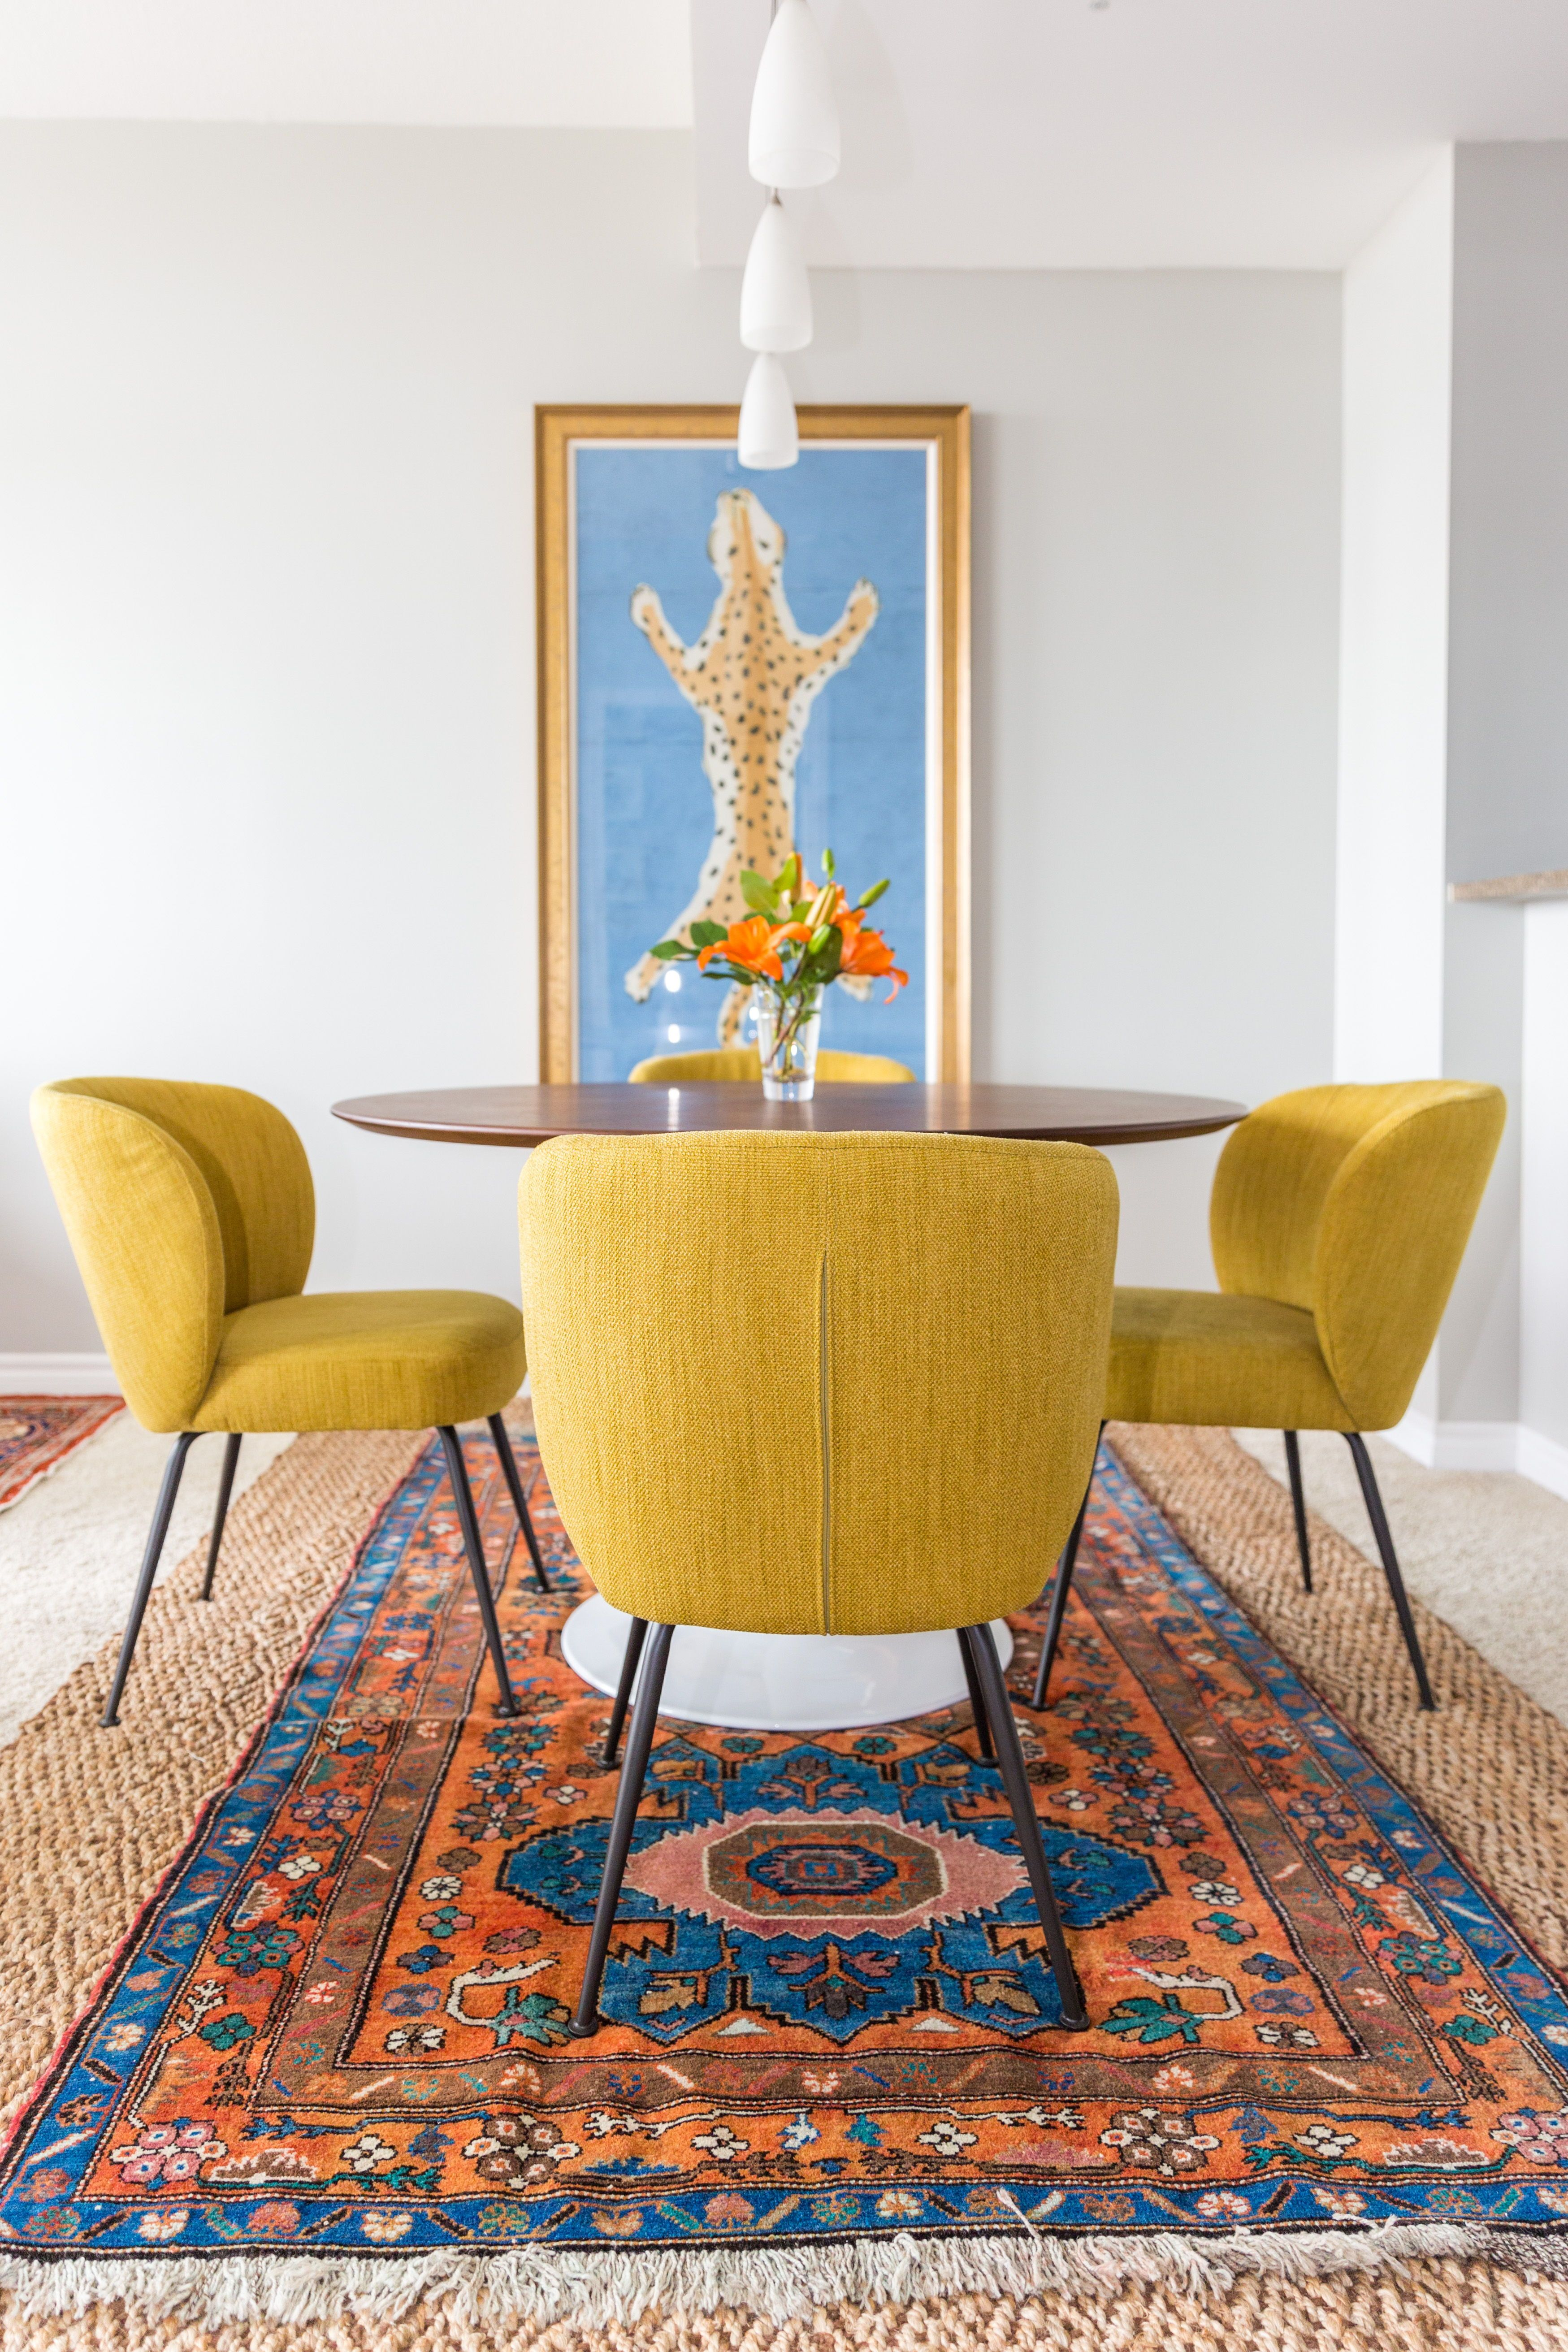 Yellow Upholstered Dining Chairs In San Diego Condo Dining Room